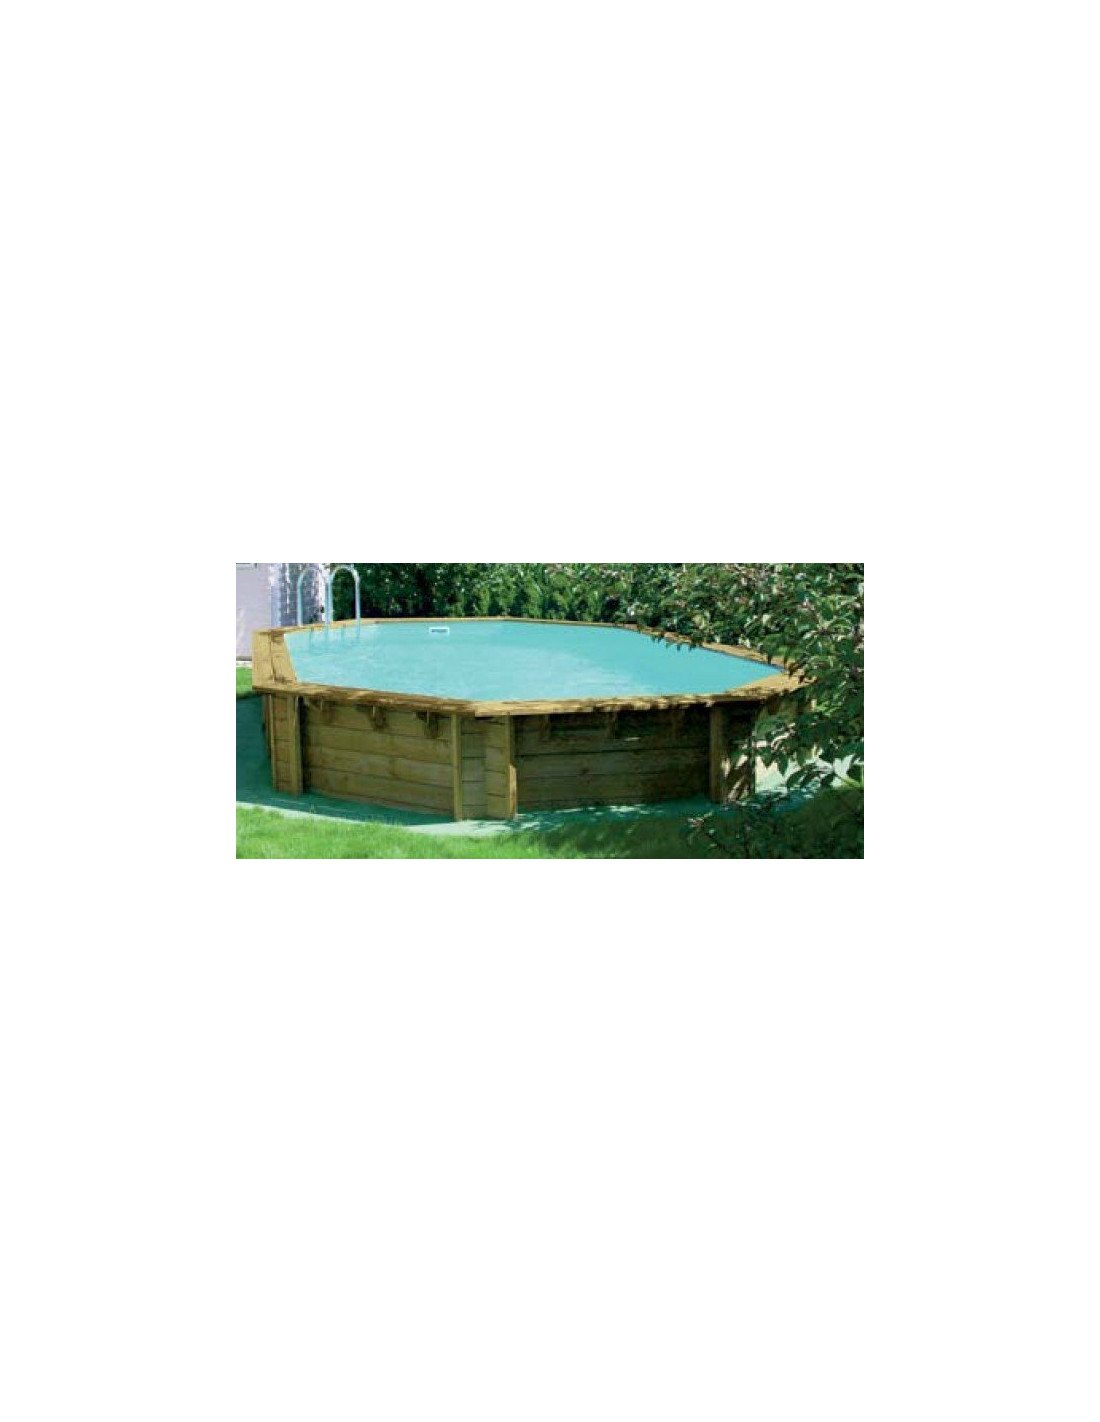 Piscine octogonale bois hors sol awesome autres vues for Piscine bois hors sol auchan